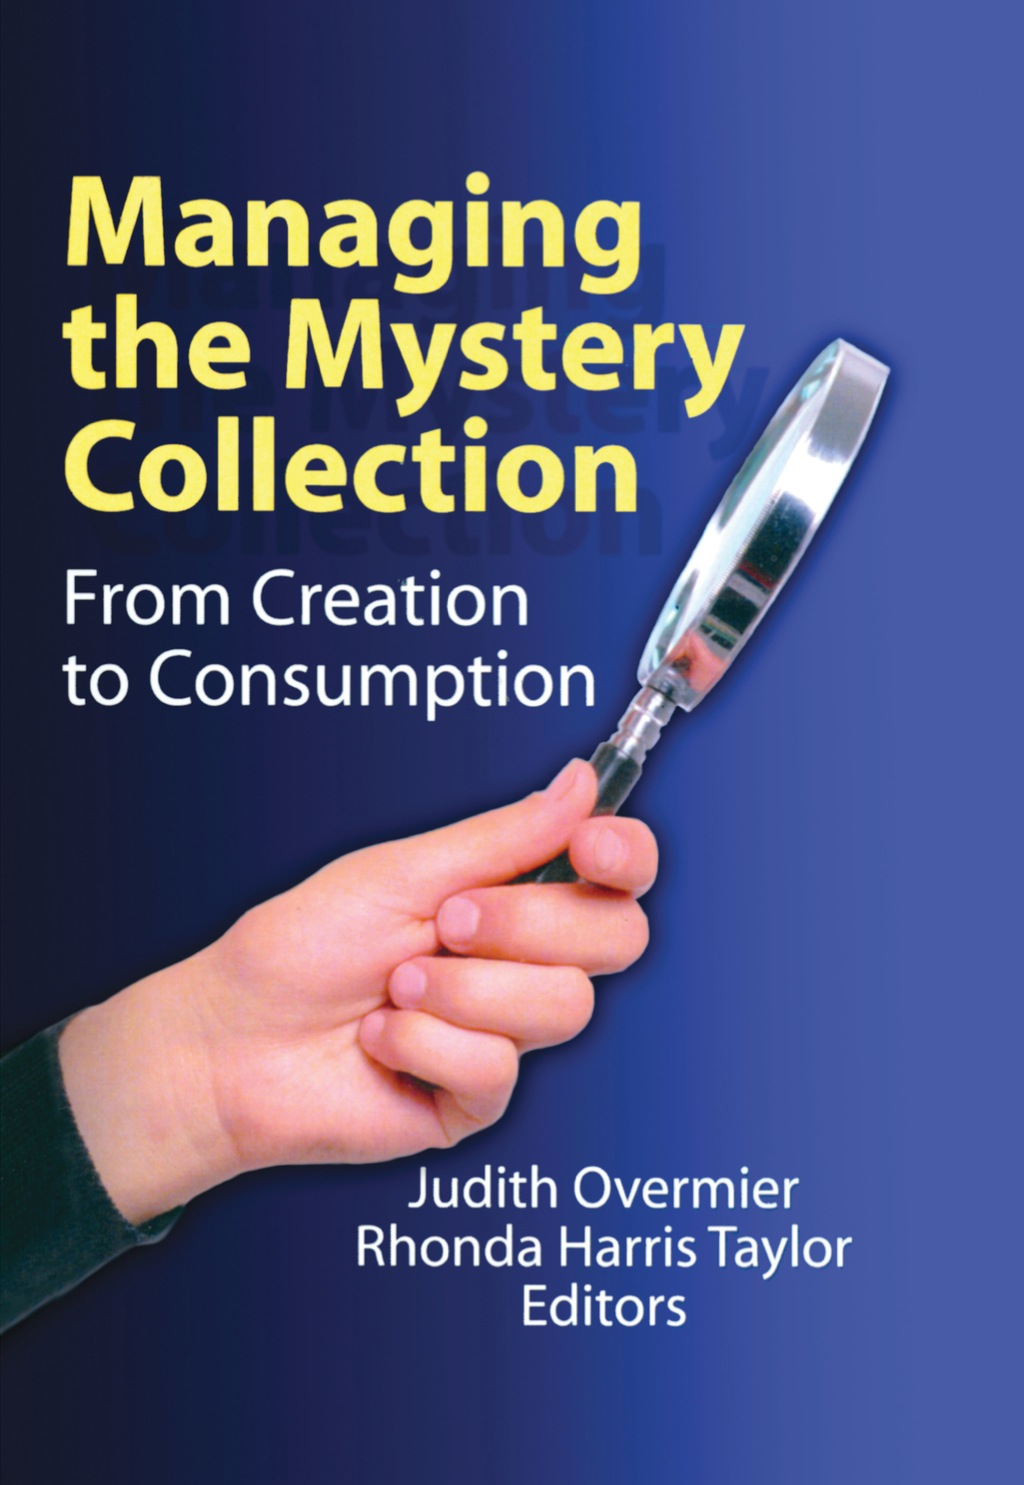 Managing the Mystery Collection (ebook) eBooks